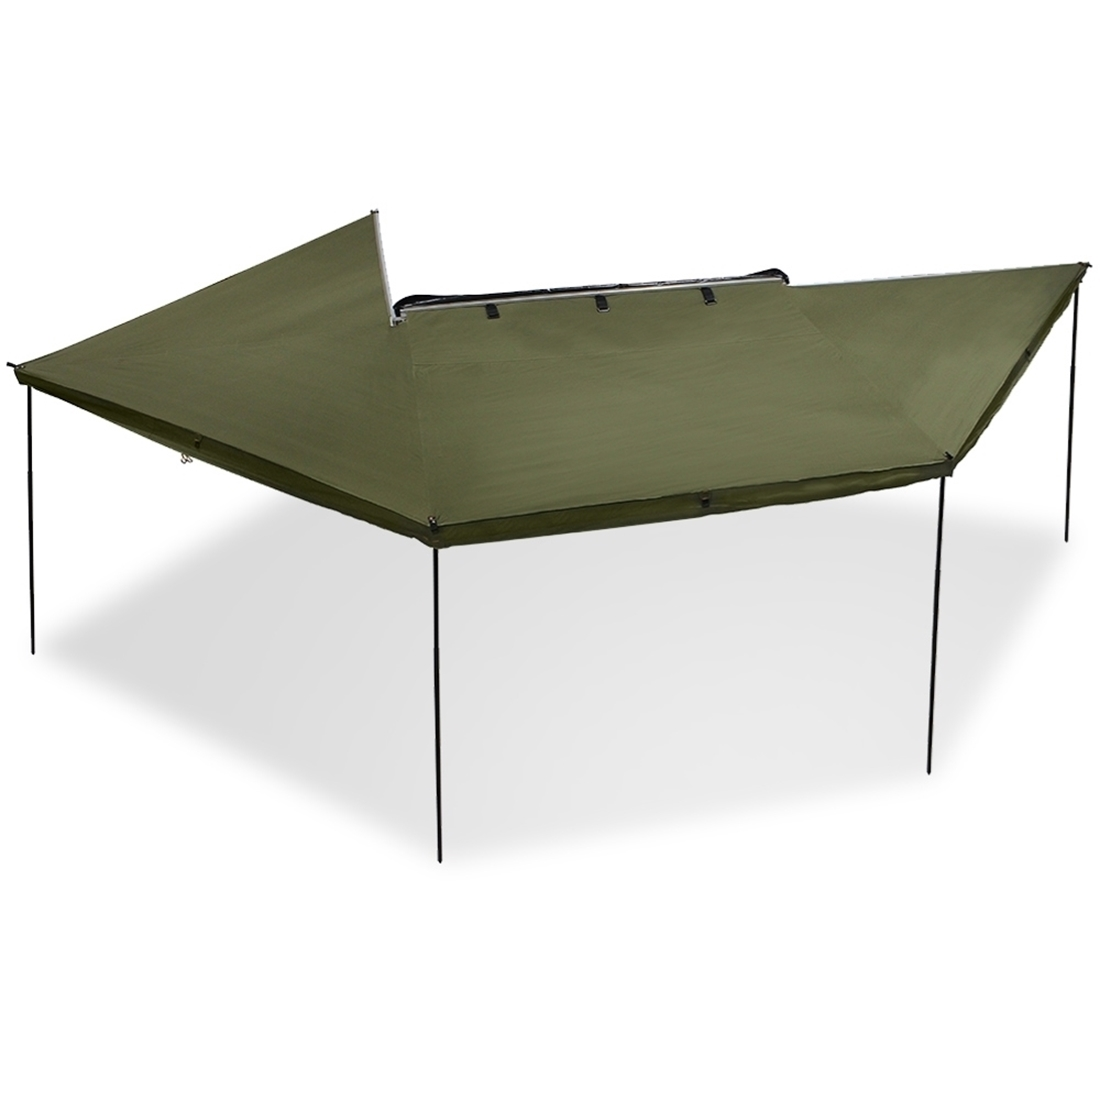 23ZERO Peregrine 270 Awning Driver Side